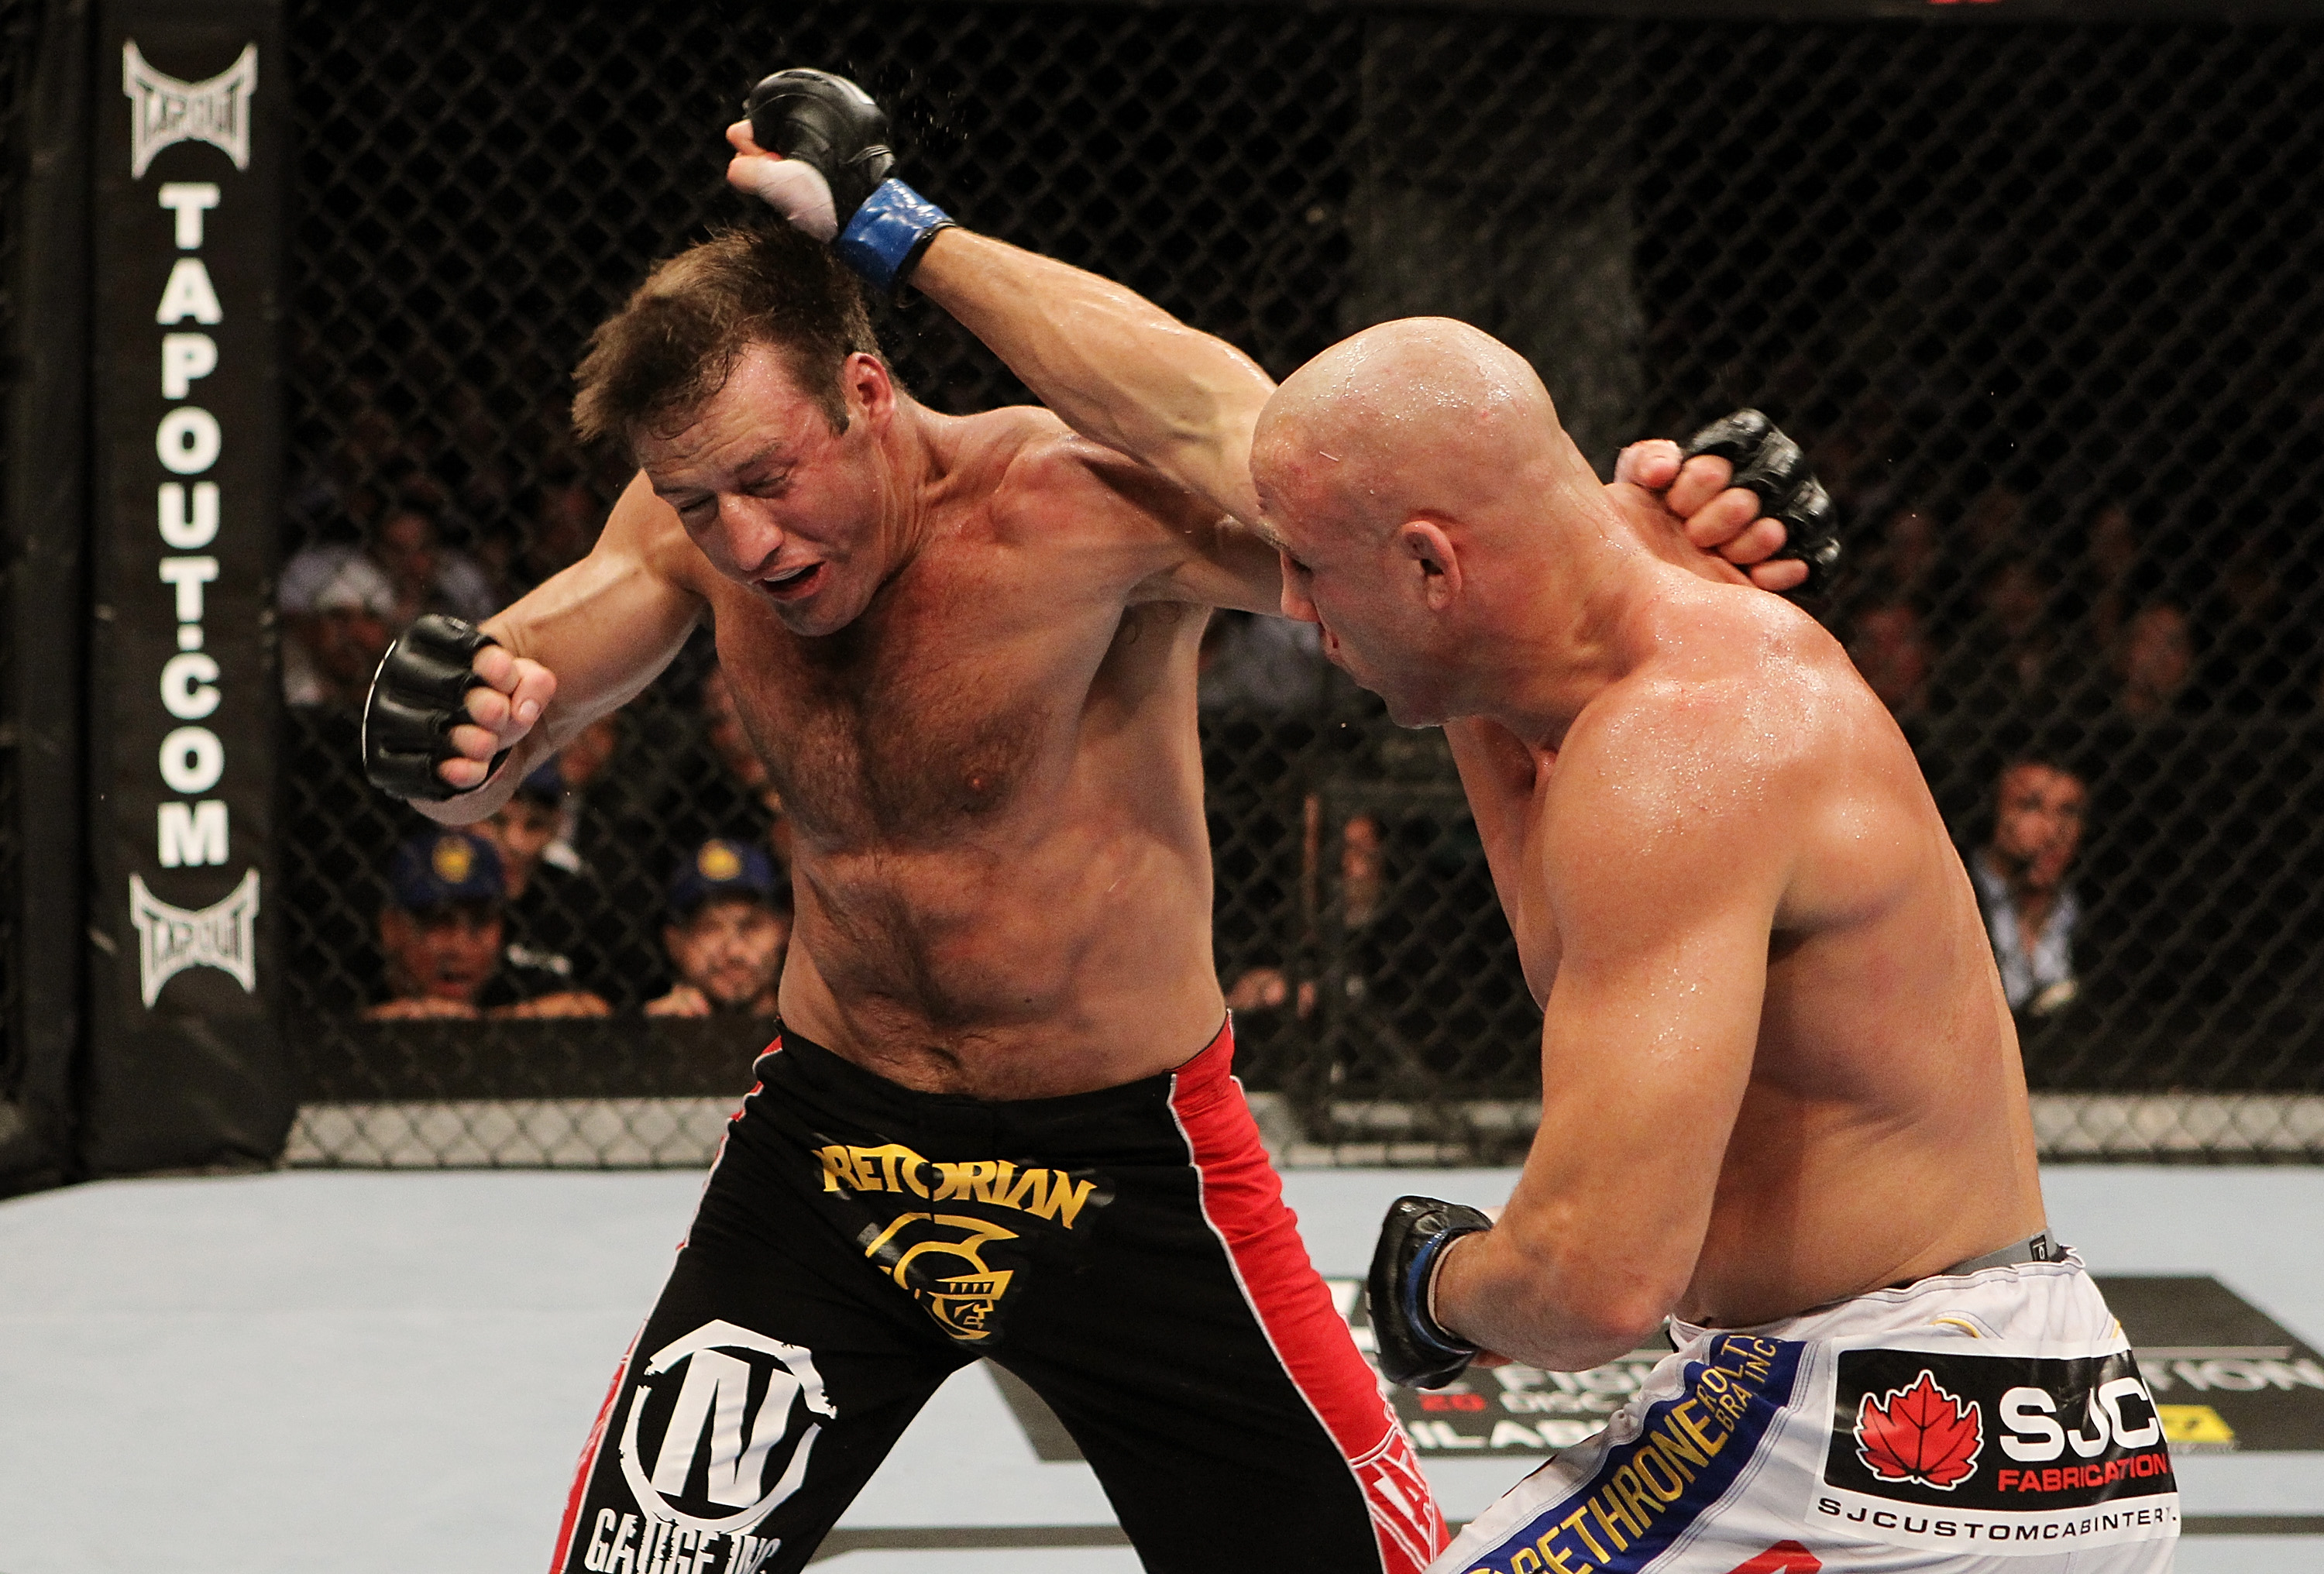 SAN JOSE, CA - NOVEMBER 19: (L-R) Stephan Bonnar dodges the punch of Kyle Kingsbury during an UFC Light Heavywieght bout at the HP Pavilion on November 19, 2011 in San Jose, California.  (Photo by Josh Hedges/Zuffa LLC/Zuffa LLC via Getty Images)